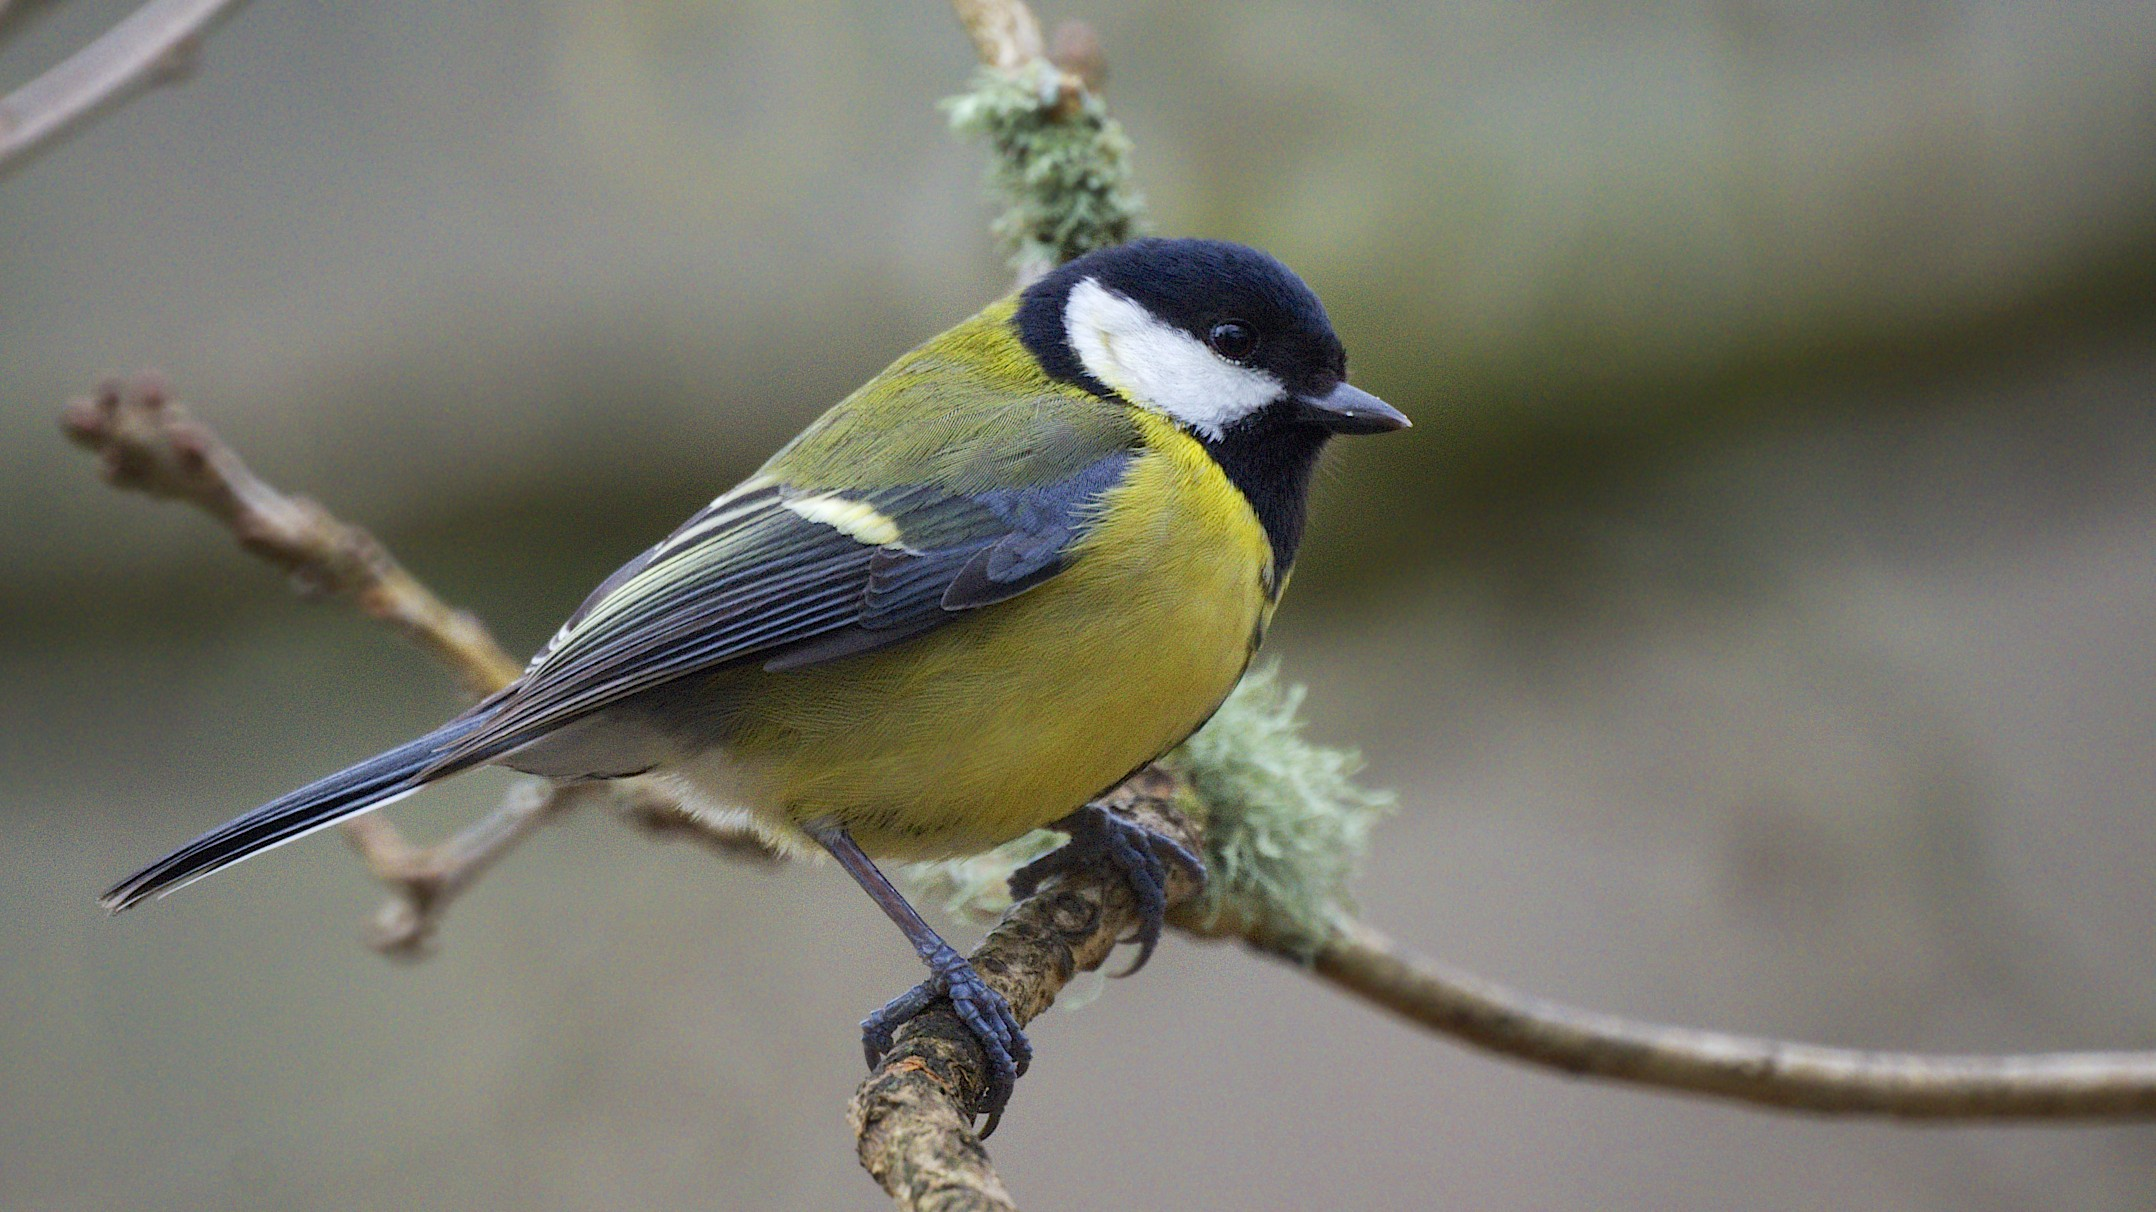 Great_Tit_(8501110836)